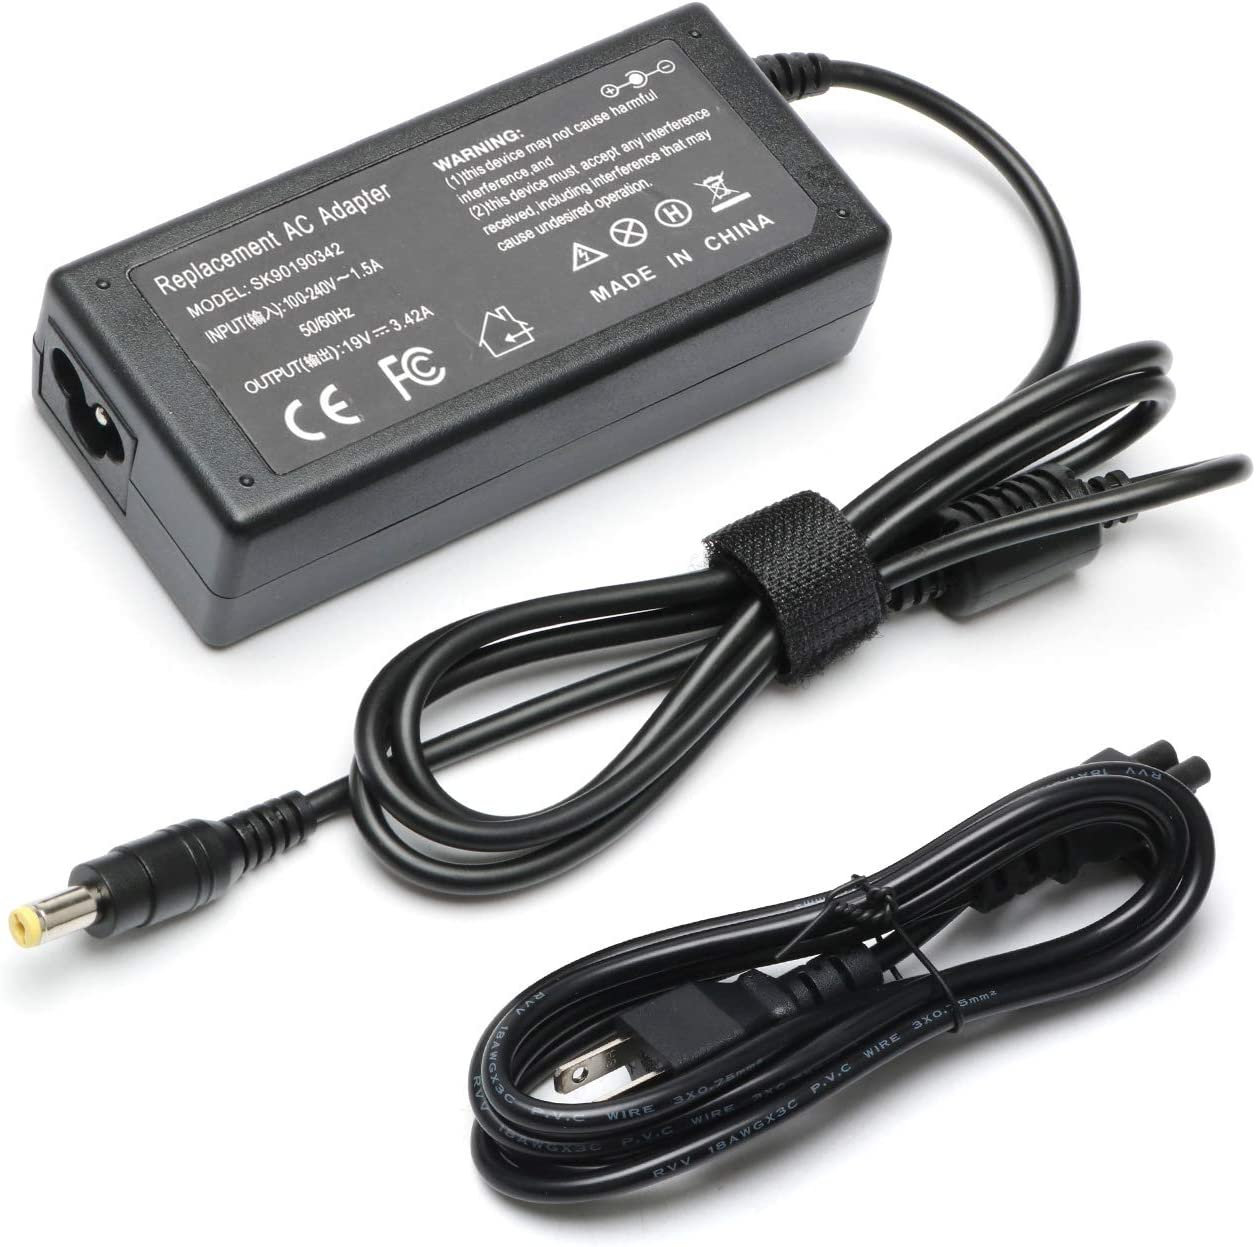 New E15 E5 65W AC Adapter Laptop Charger for Acer-Aspire N15Q1 ES1 E1 ES1-S12 E1-571 E1-510P E1-521 E3-111 E5-511P E5-521 5733 5517 5349 5750 5742 PA-1650-86 5742 5750-19V 3.42A Power Supply Cord